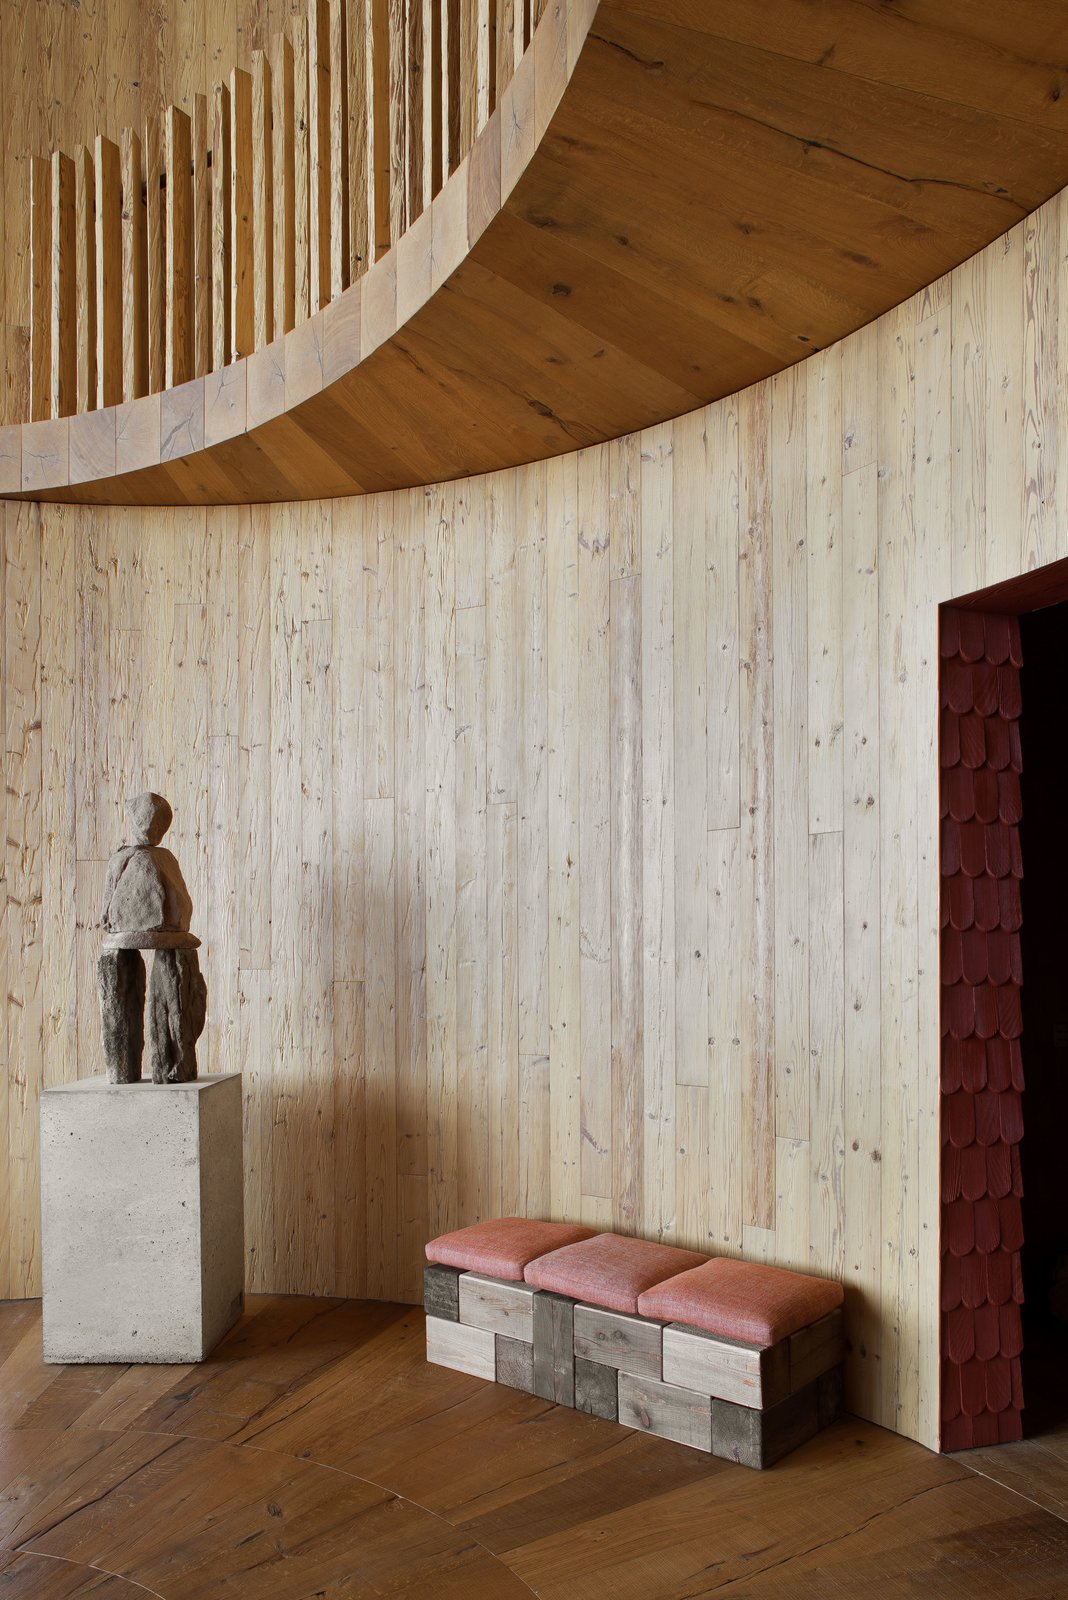 Swiss artist Ugo Rondinone's stone sculpture is displayed in the entry.